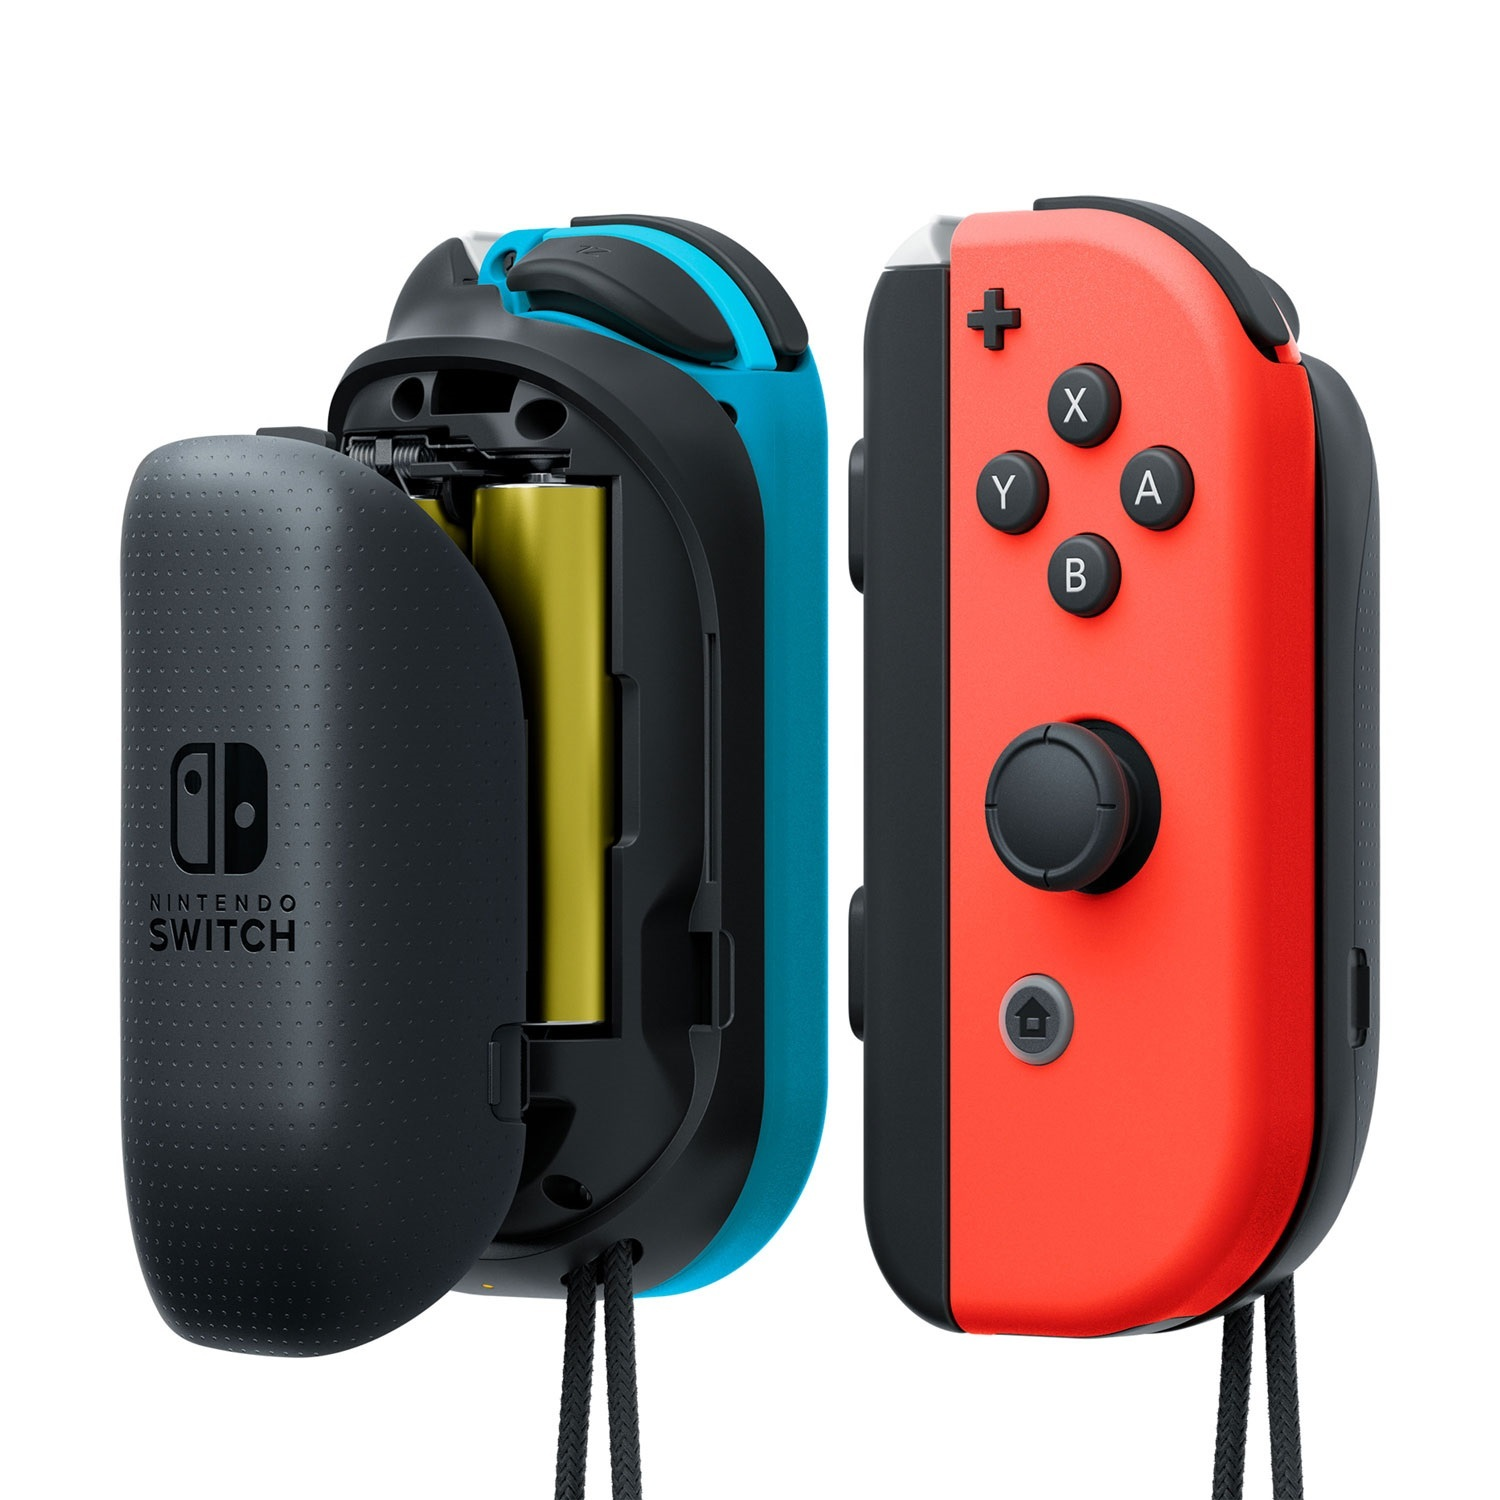 Nintendo Switch Joy-Con AA Battery Pack for Nintendo Switch image